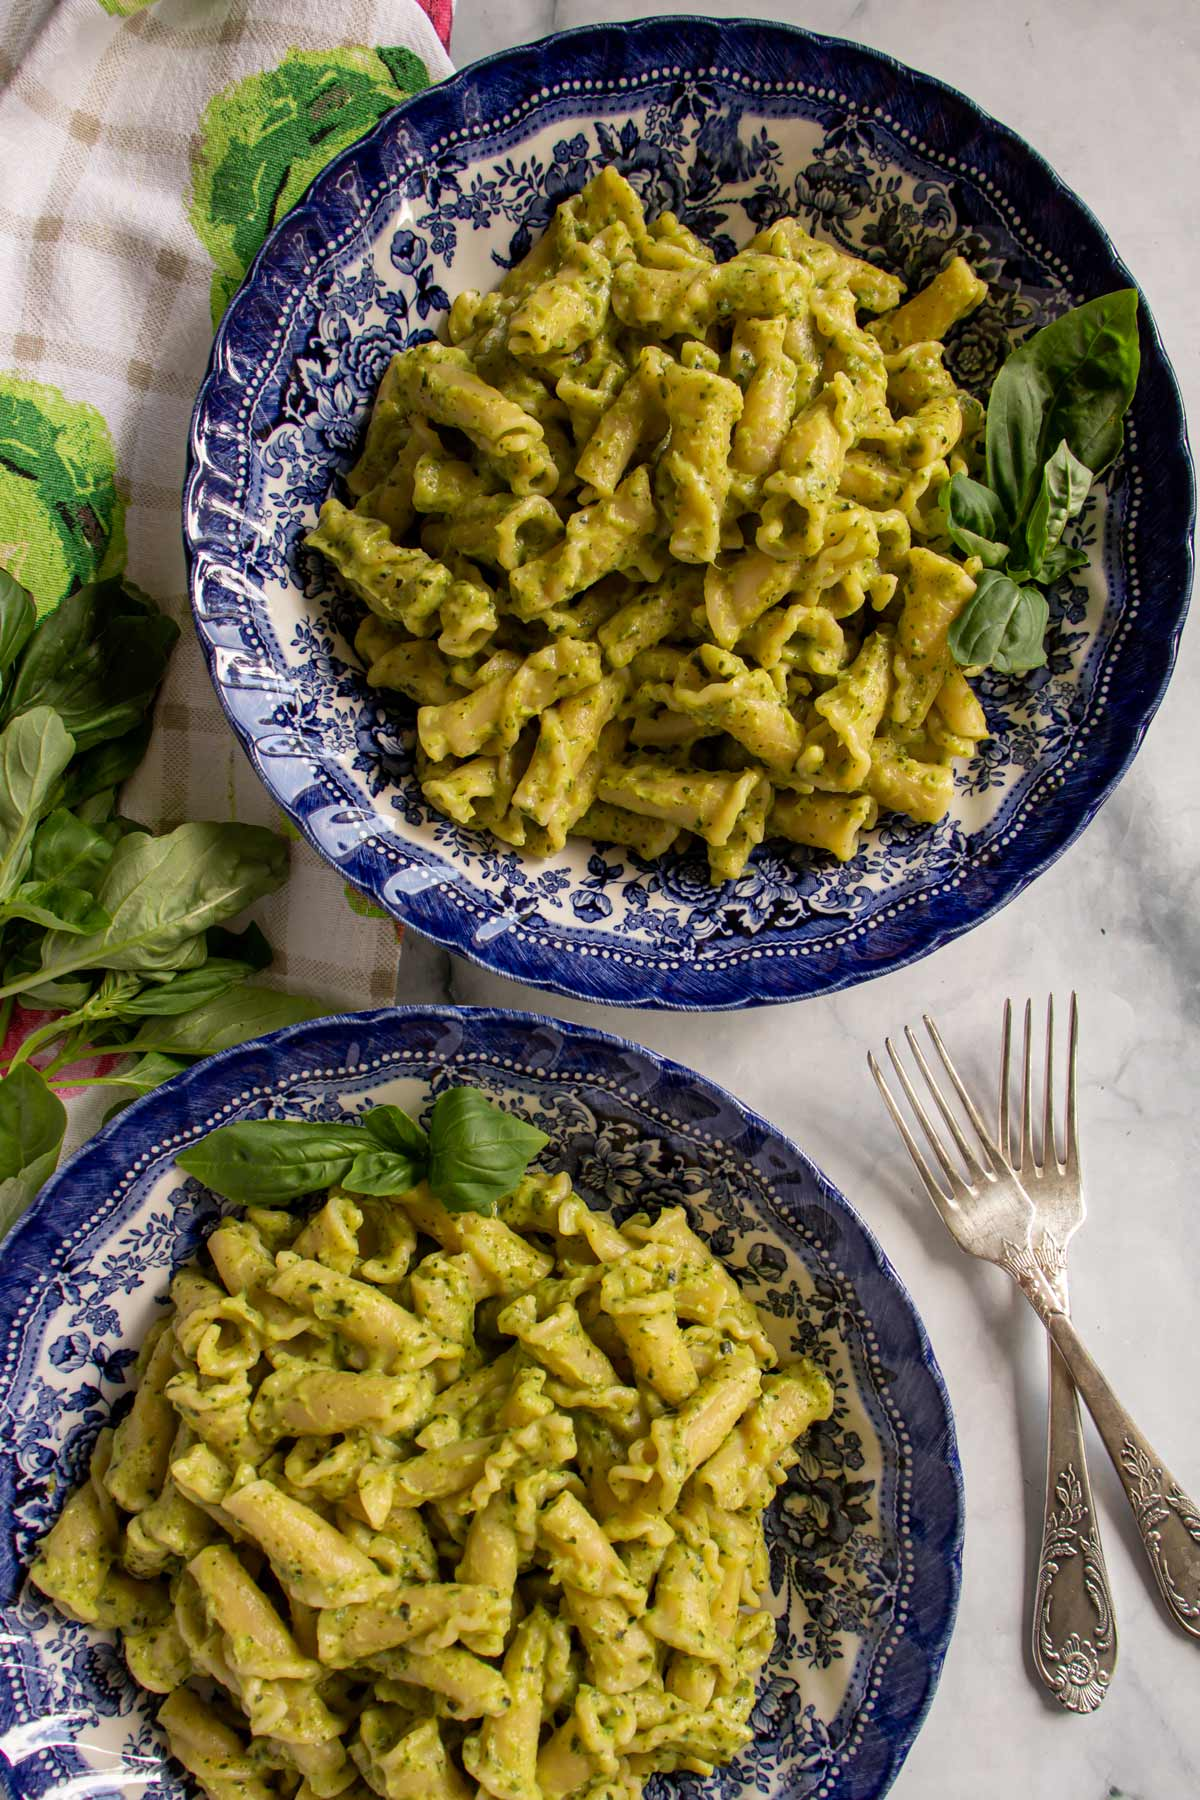 Two blue bowls of campanelle pasta tossed in green pureed zucchini sauce next to two forks.